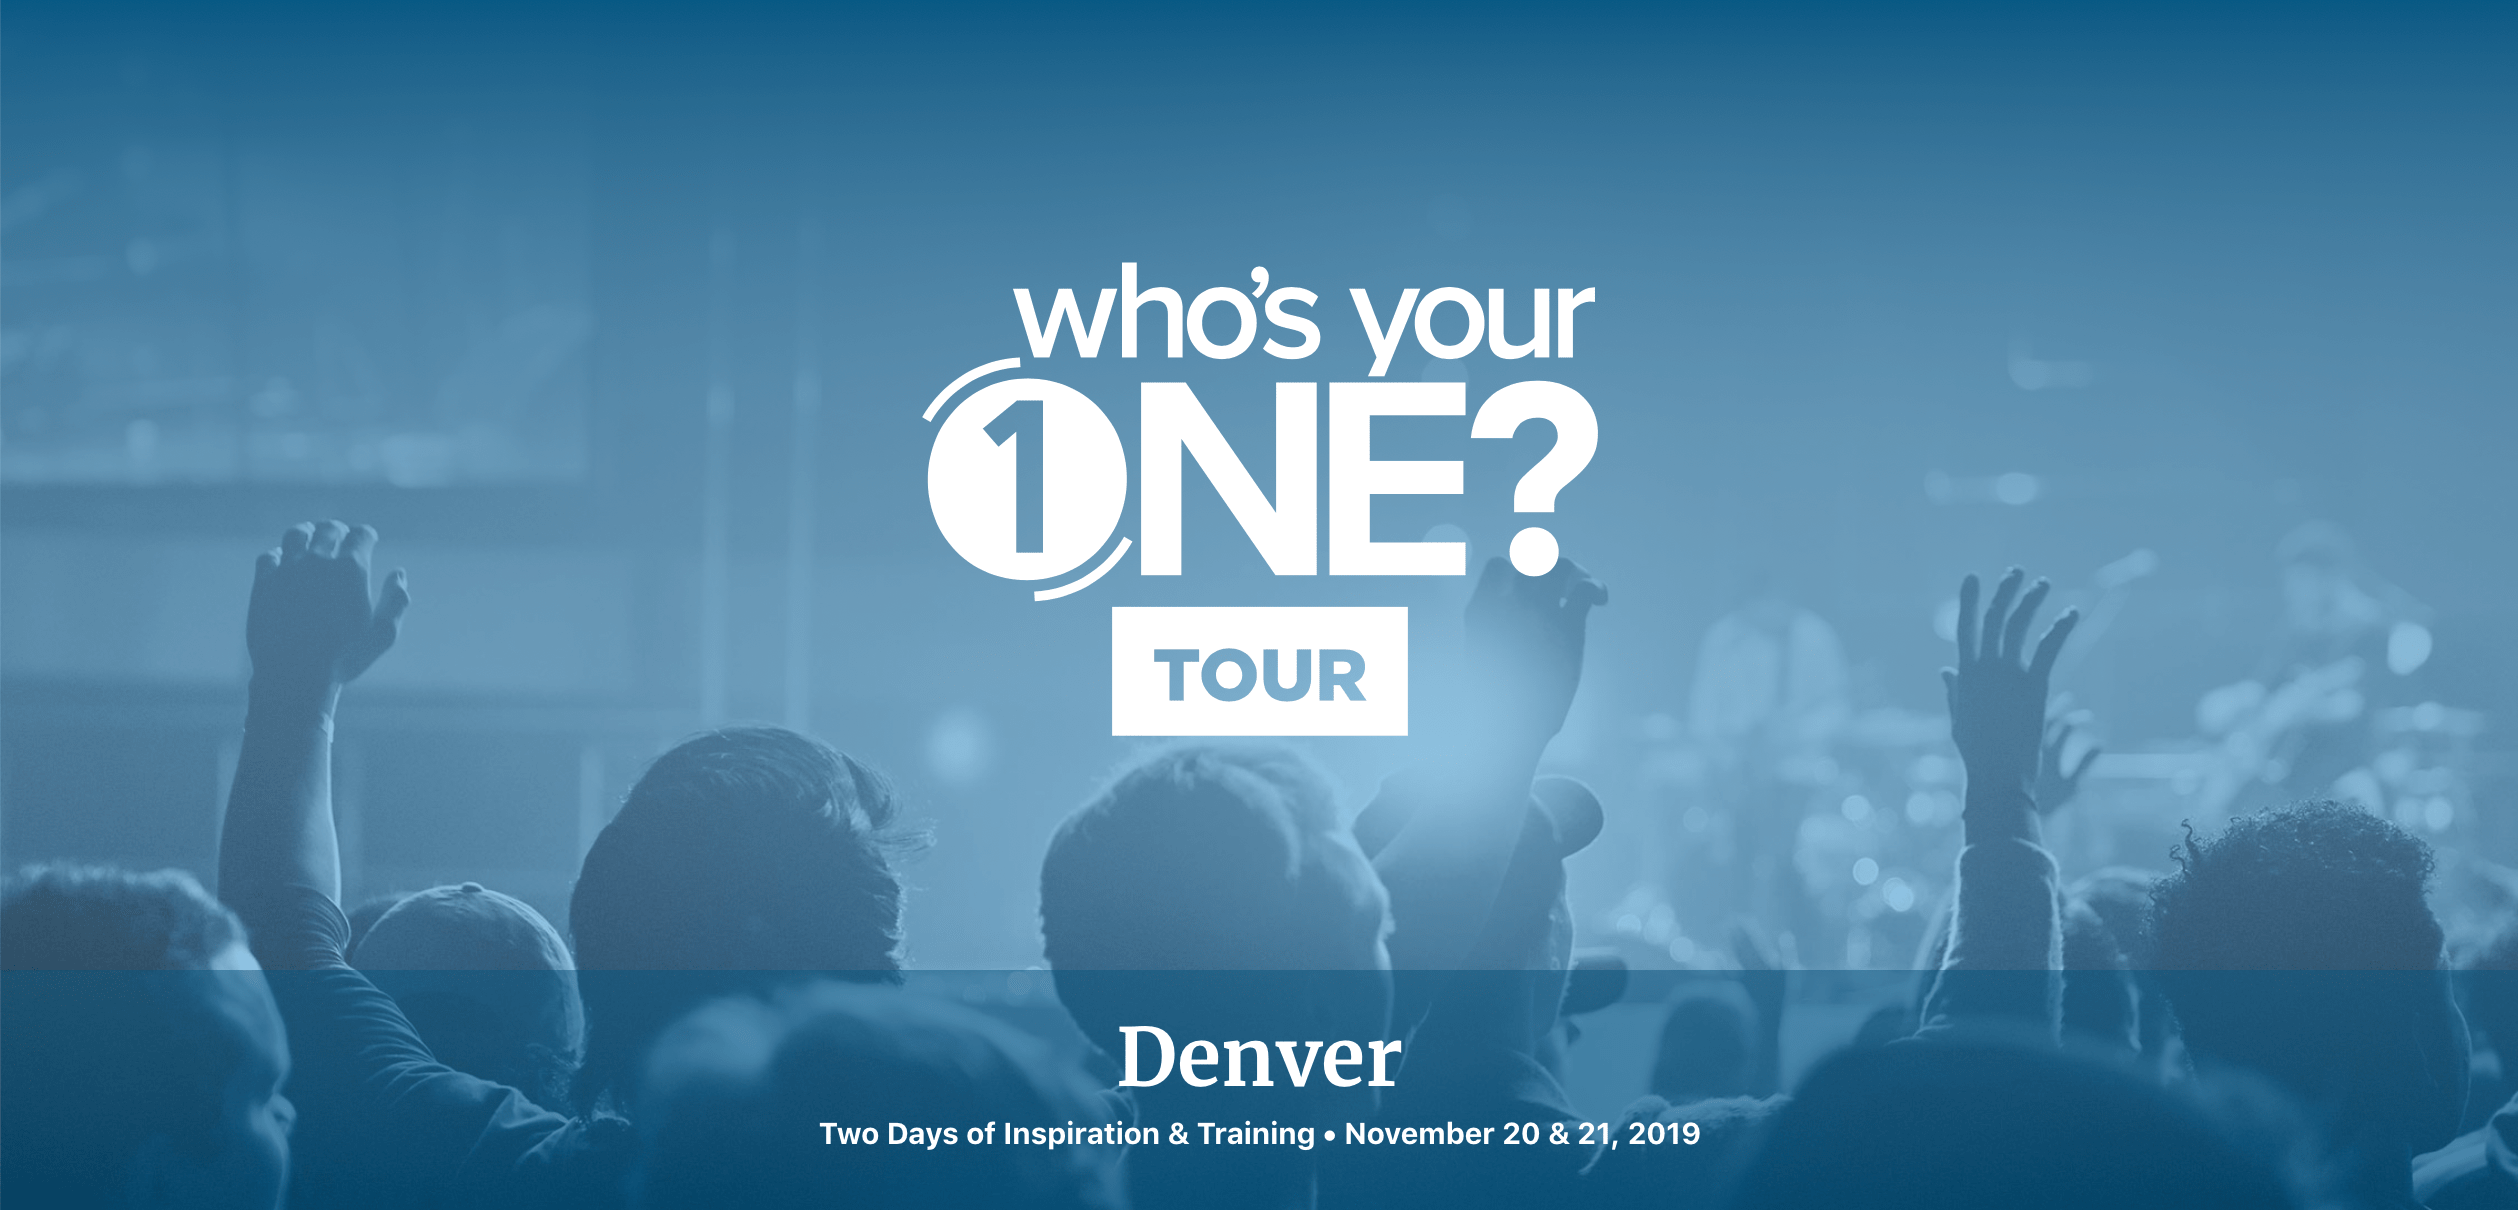 Who's Your One Tour?